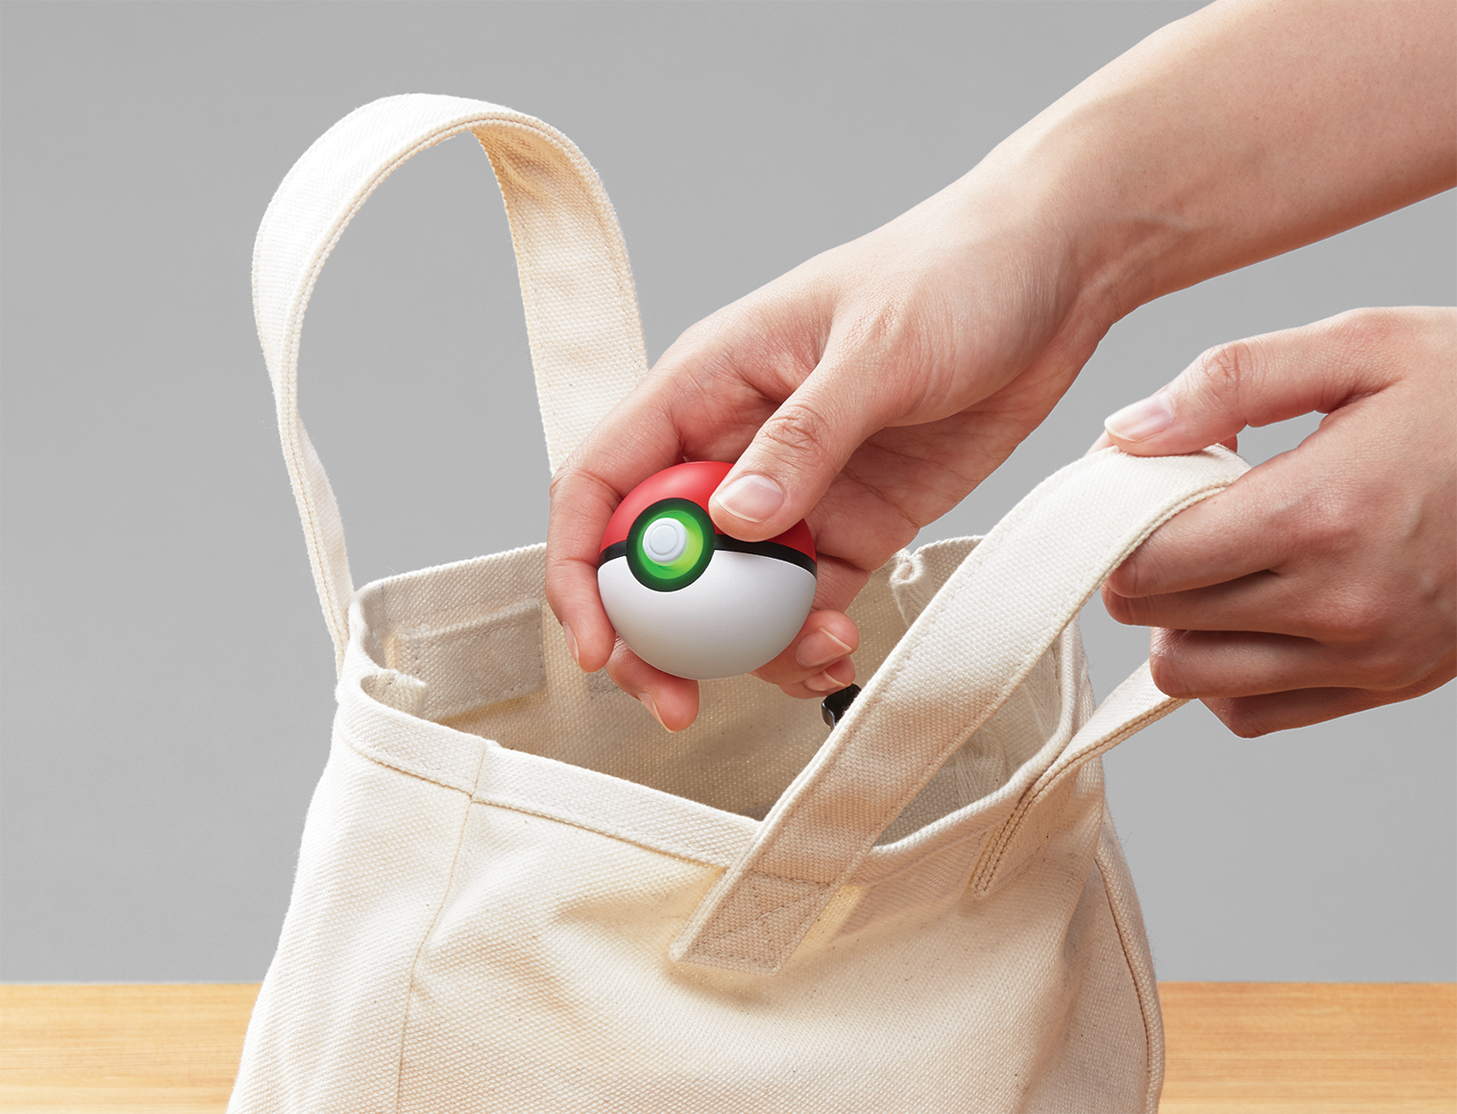 Poké Ball Plus is a Nintendo Switch accessory that looks like a fans' dream